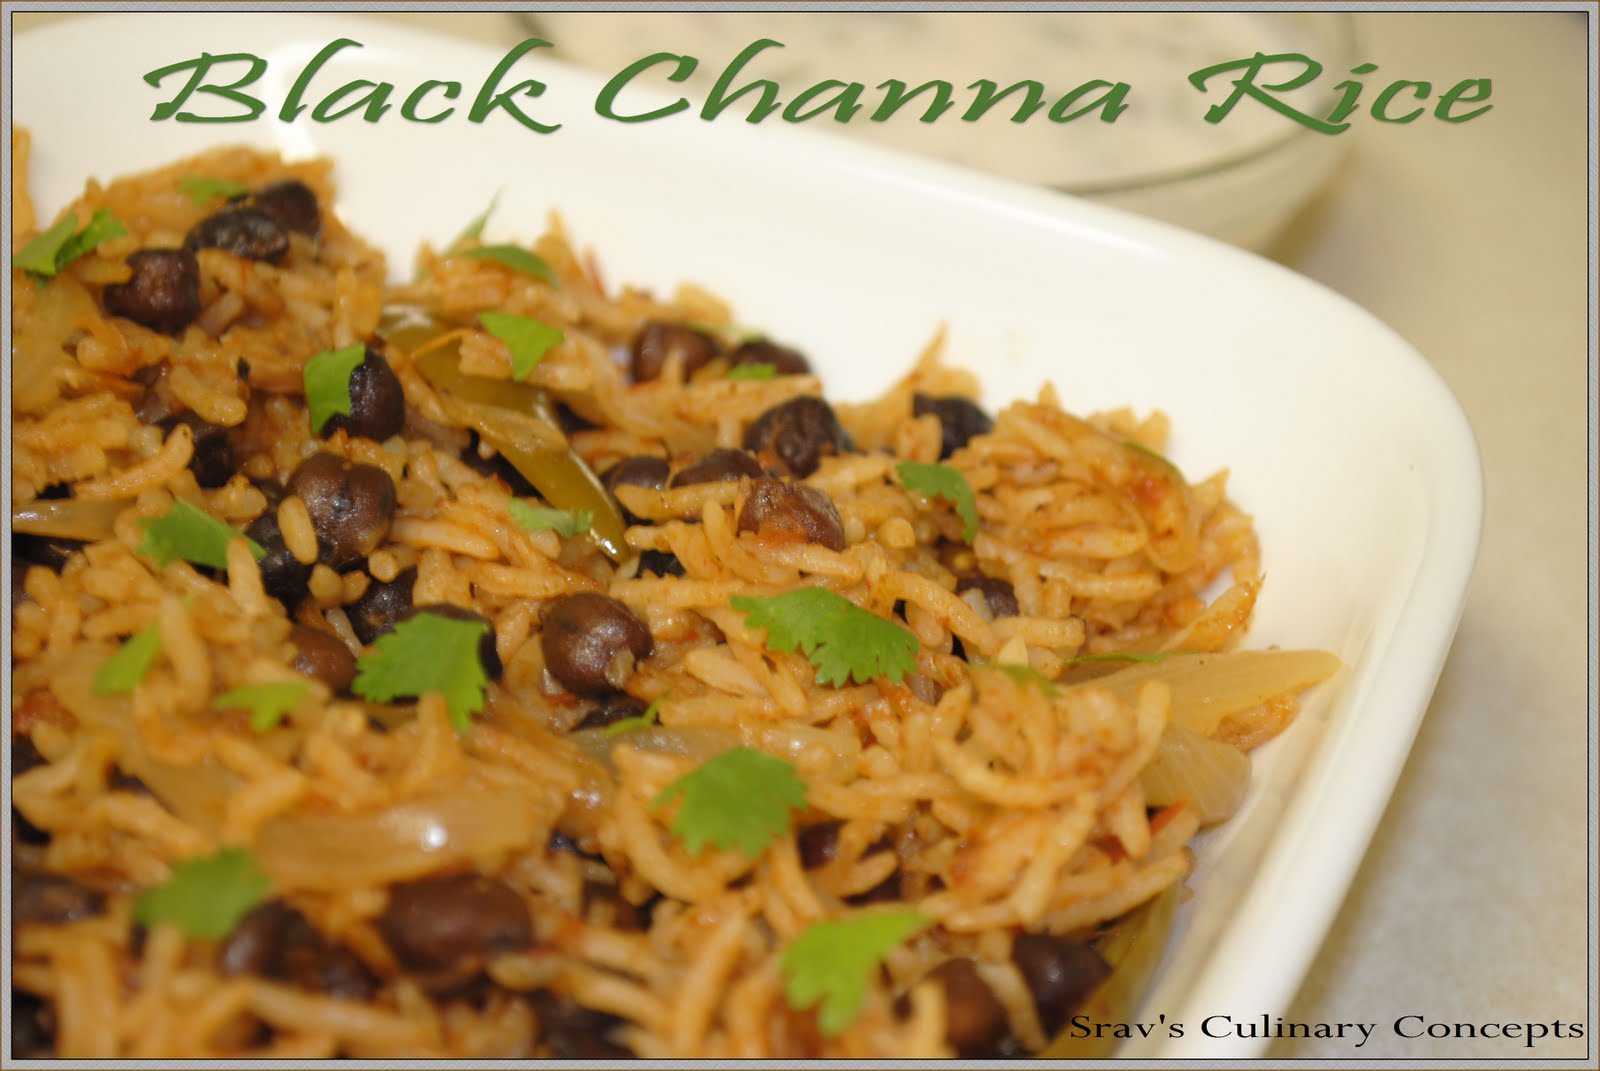 Black channa rice